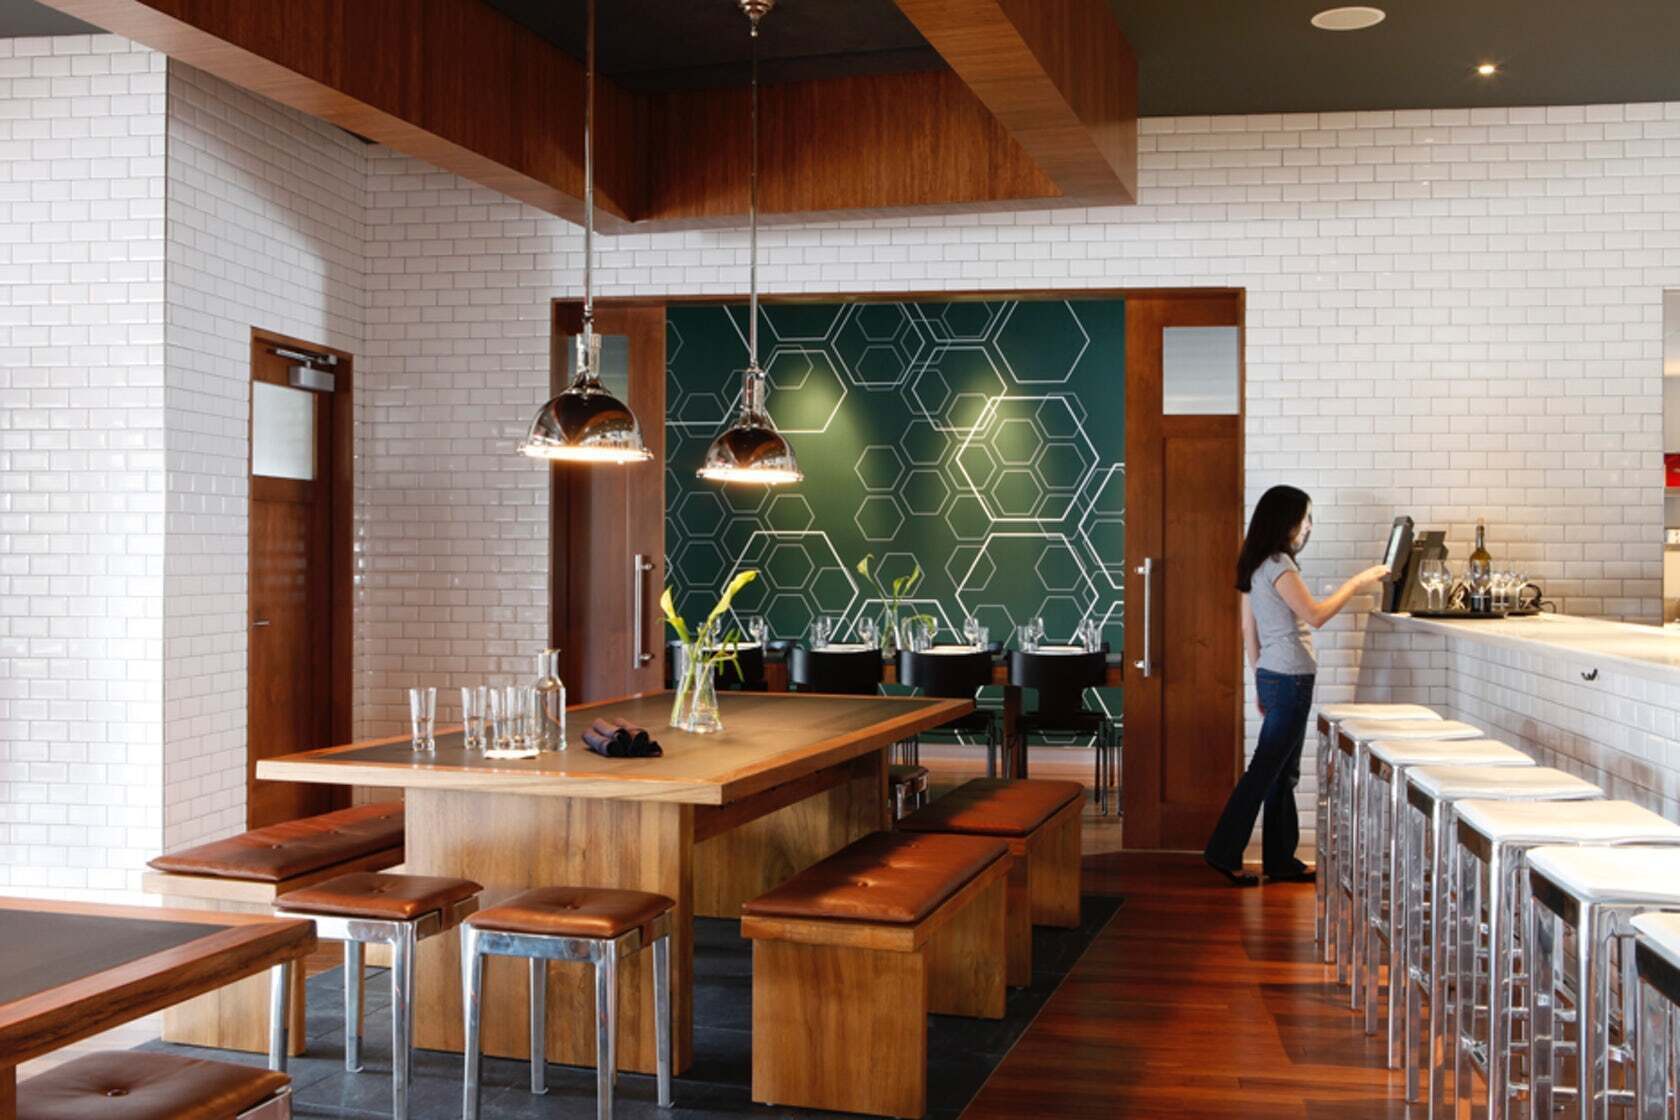 Townsend Leather's Antique Legends Whiskey Tan was used on the bench tops of The Lab Gastropub.